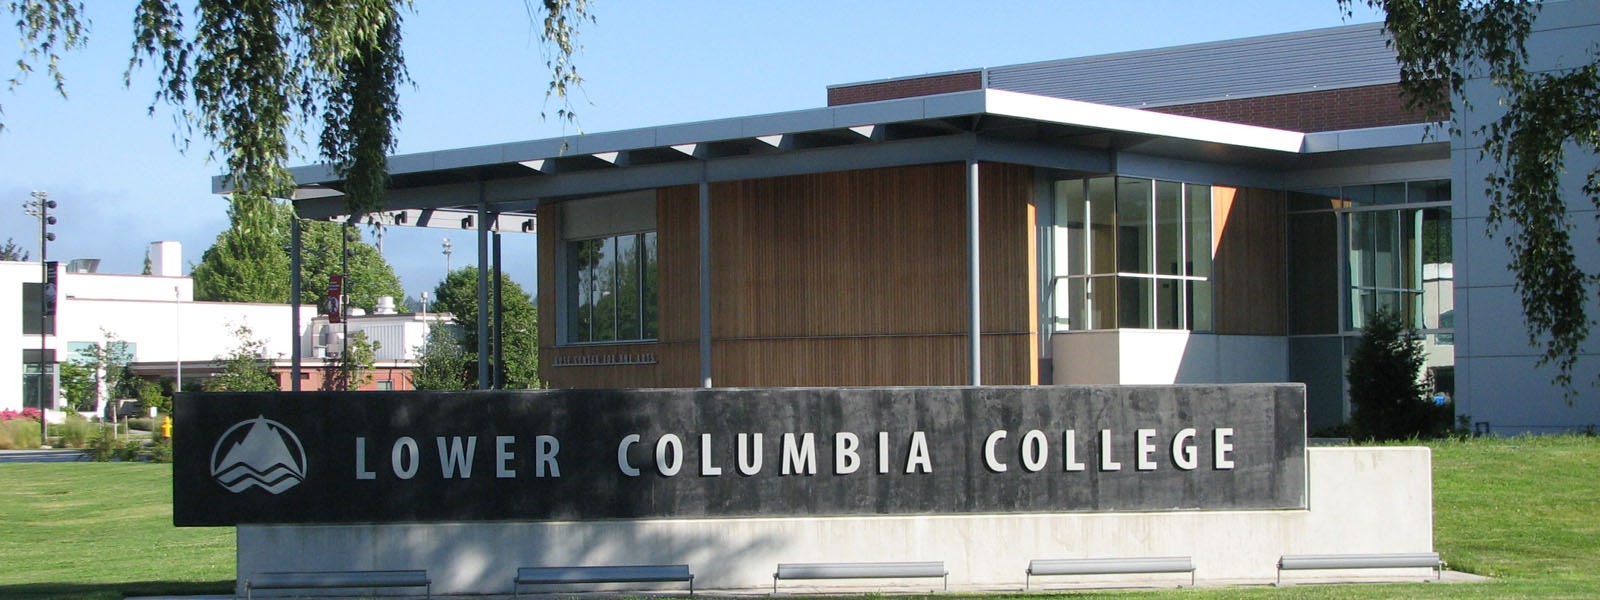 Lower Columbia College Rose Center for the Arts